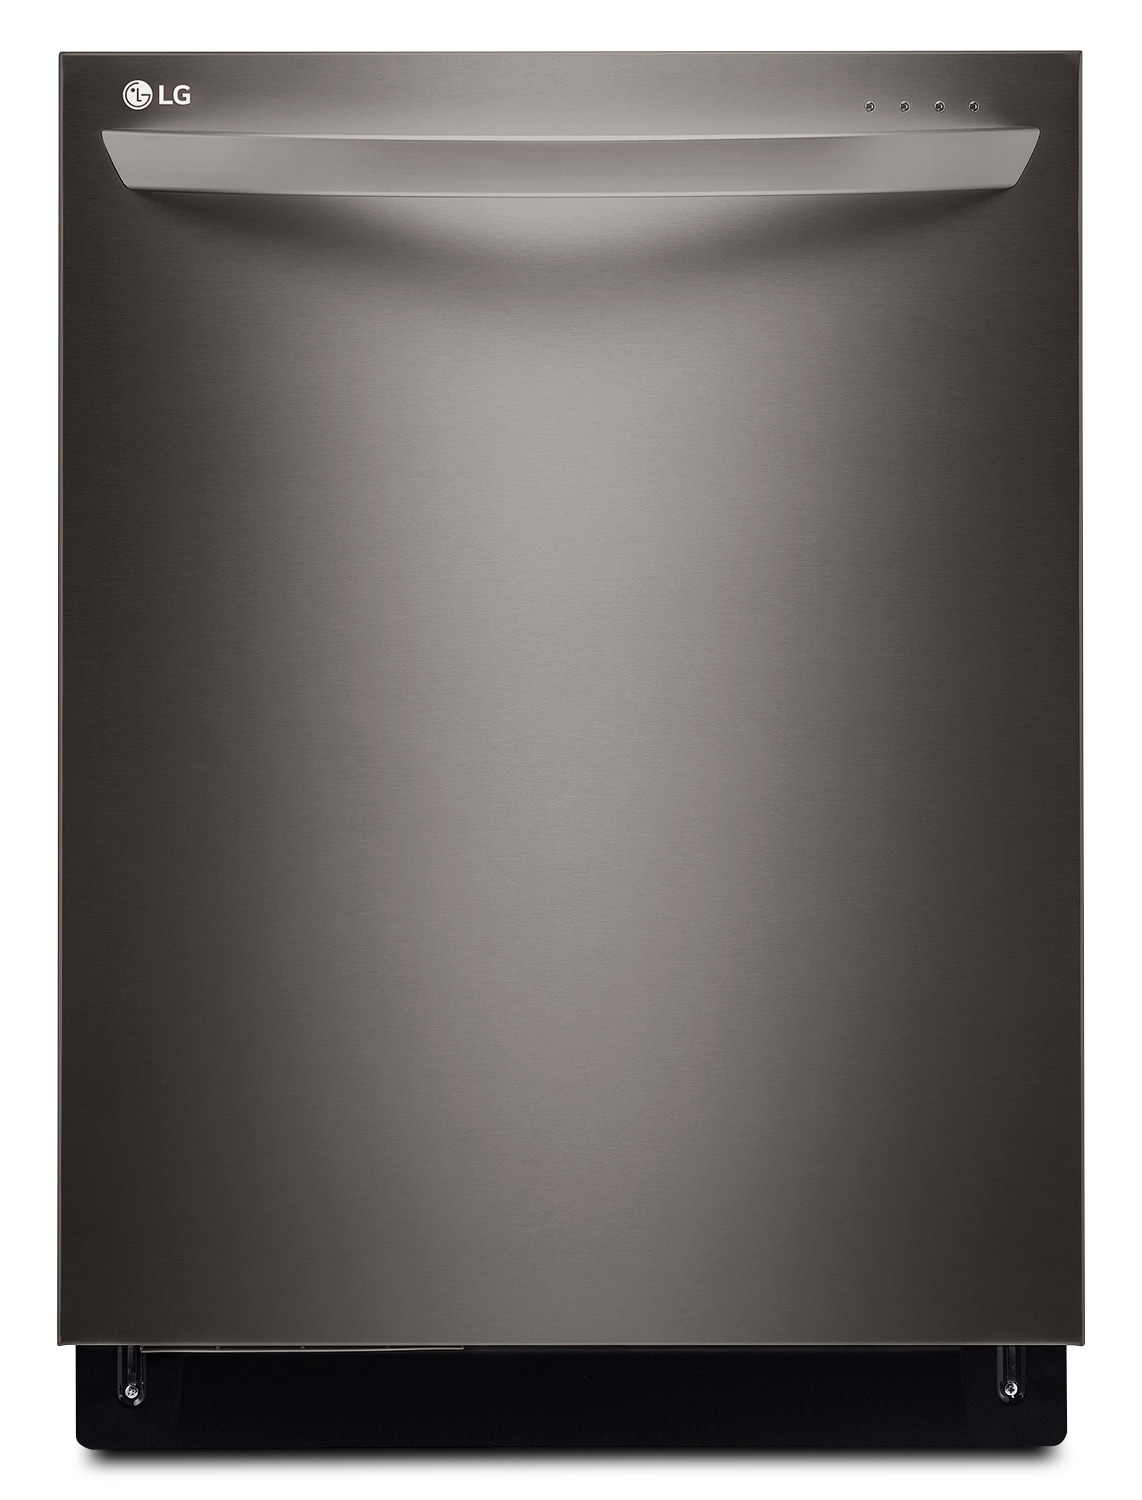 "LG 23.75"" Built-In Dishwasher – Black Stainless Steel LDT9965BD"